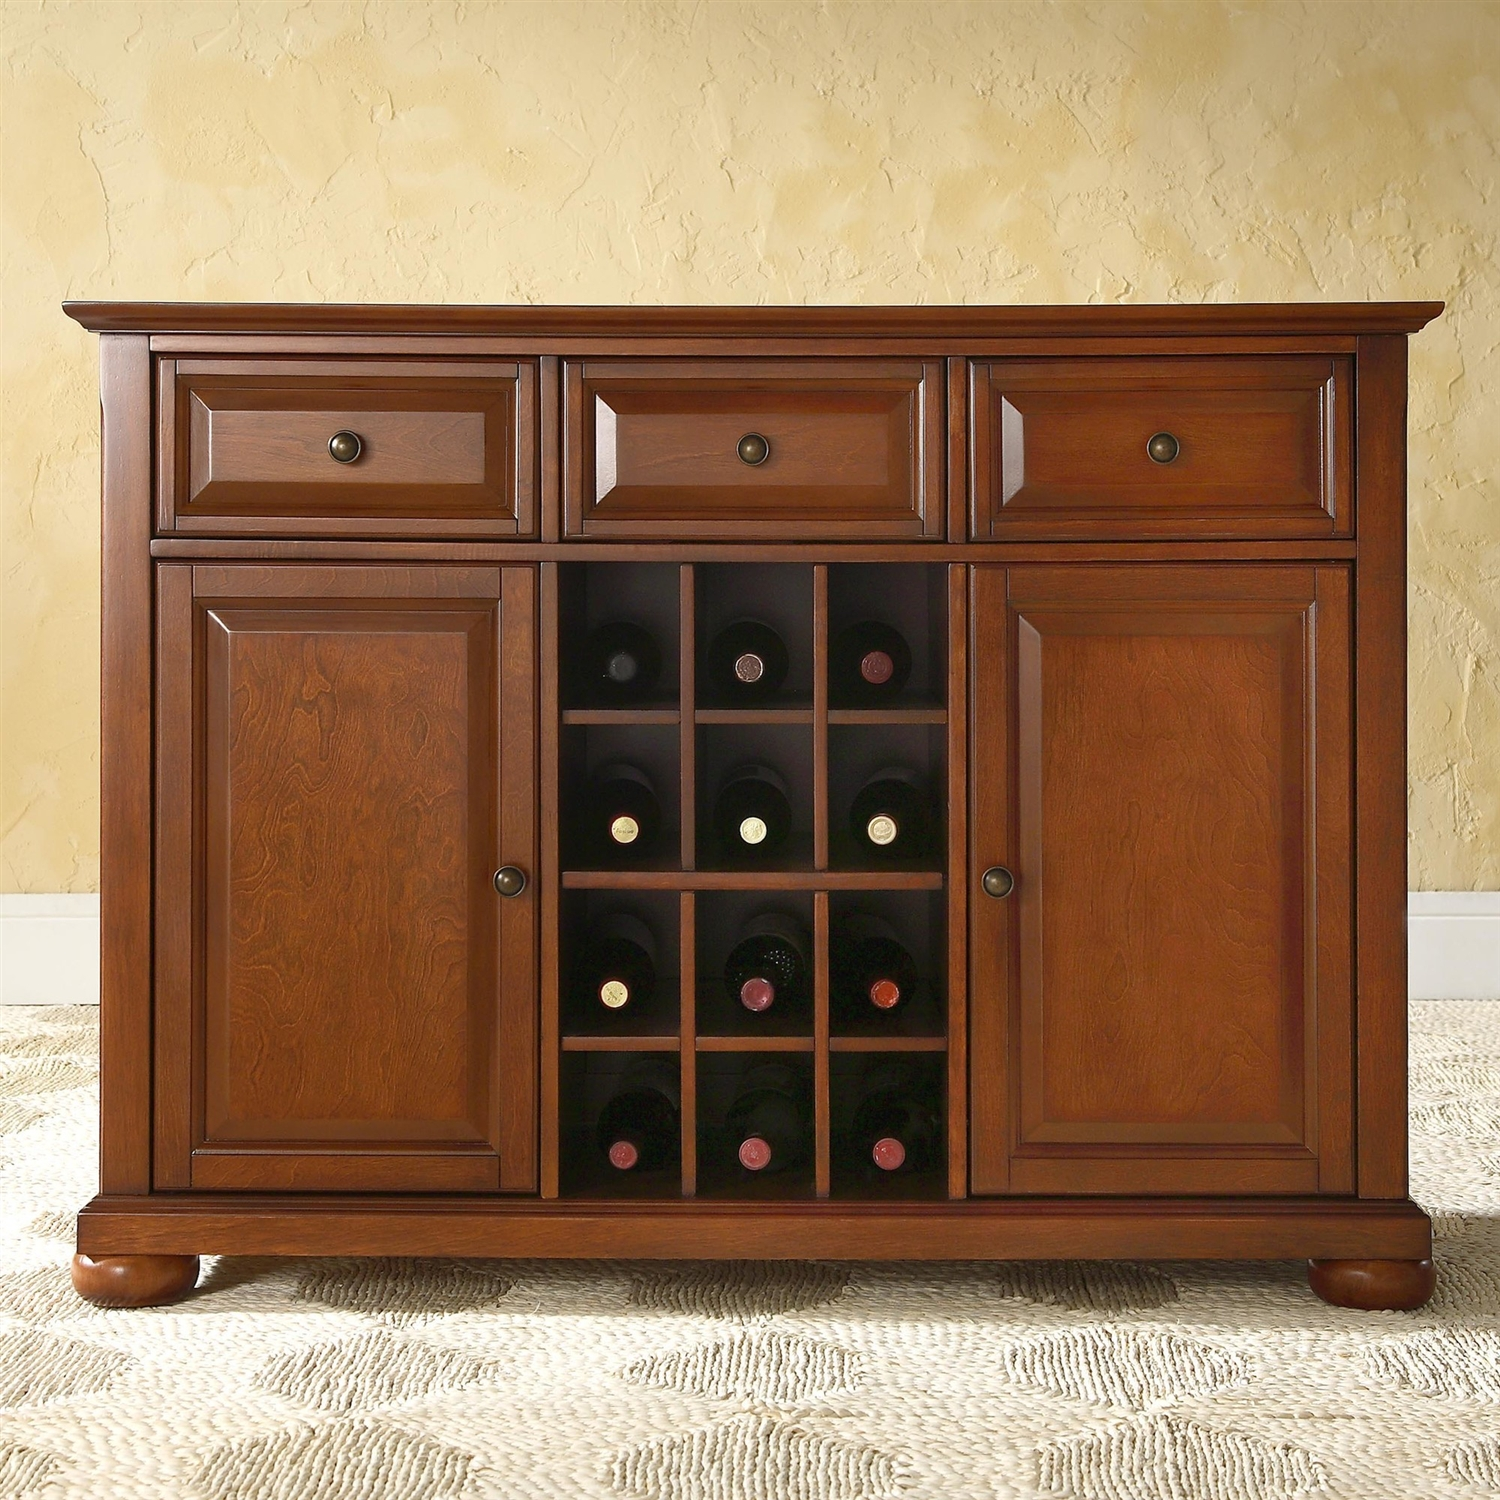 This Cherry Wood Dining Room Storage Buffet Cabinet Sideboard with Wine Holder merges clean modern lines and traditional raised panel doors to create a strong, solid place to store and display your favorite serving pieces. Three deep drawers sit just below the server's top, which can be used to store silverware, linen napkins, wine bottle openers and more. The stunning open air center storage area was designed for versatility. The dividers allow you to store up to 12 standard bottles of wine. They can also be removed to create two open shelves to display your favorite serveware. The legs boast adjustable levelers, for maximum stability. The fully finished back allows you to place this against a wall or in the open and still look magnificent from all angles. Product Care: Use a soft clean cloth that will not scratch the surface when dusting. Use of furniture polish is not necessary. Should you choose to use polishes, test in an inconspicuous area first. Use of solvents of any kind may damage your furniture's finish. To clean, simply use a soft clean cloth moistened with lukewarm water, buff with a dry soft clean cloth. Adjustable shelf behind each door; Adjustable levelers in legs; ISTA 3A certified; Constructed of solid hardwood and veneer; Center storage area can hold up to 12 wine bottles; Manufacturer provides a 90 day warranty against defects in material and workmanship; Product Type: Server; Number of Drawers: 3; Number of Cabinets: 2; Number of Interior Shelves: 4; Number of Doors: 2; Wine Rack Bottle Capacity: 12; Assembly Required: Yes; Product Warranty: 90 Day limited warranty.